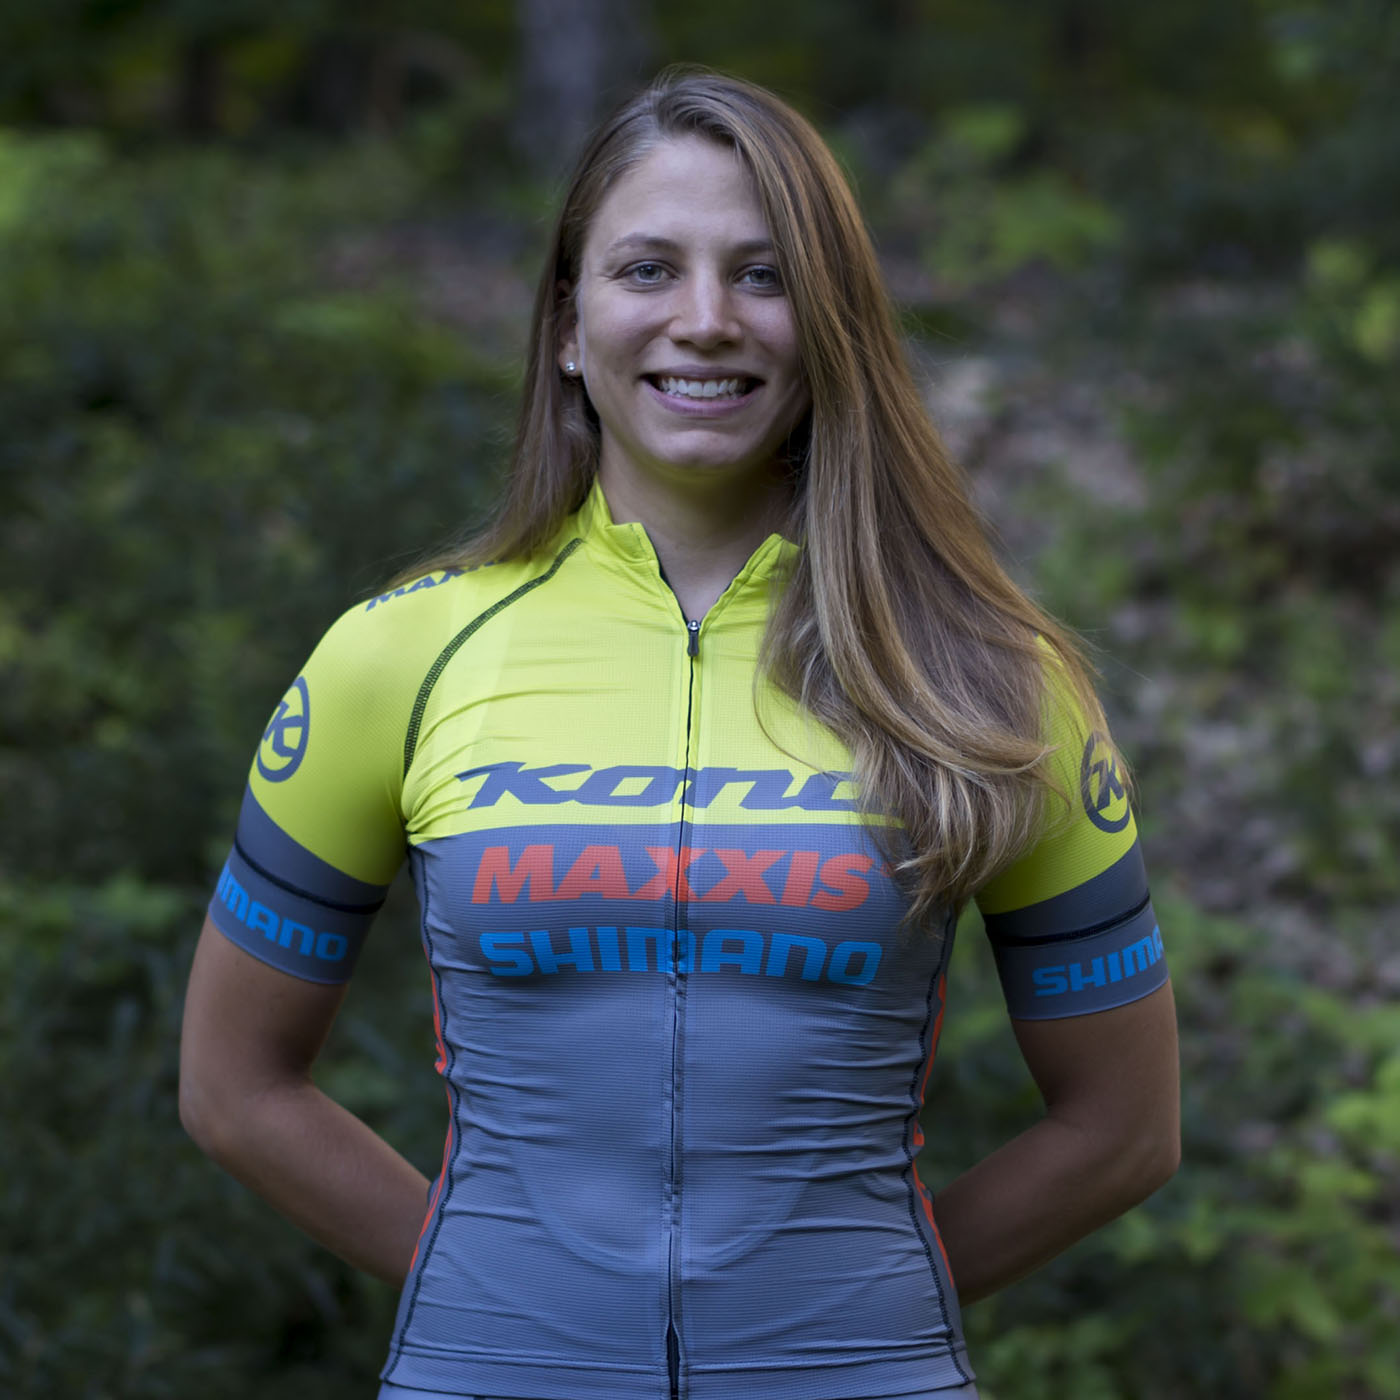 Gofahr - Musings of a Cyclocross Racer